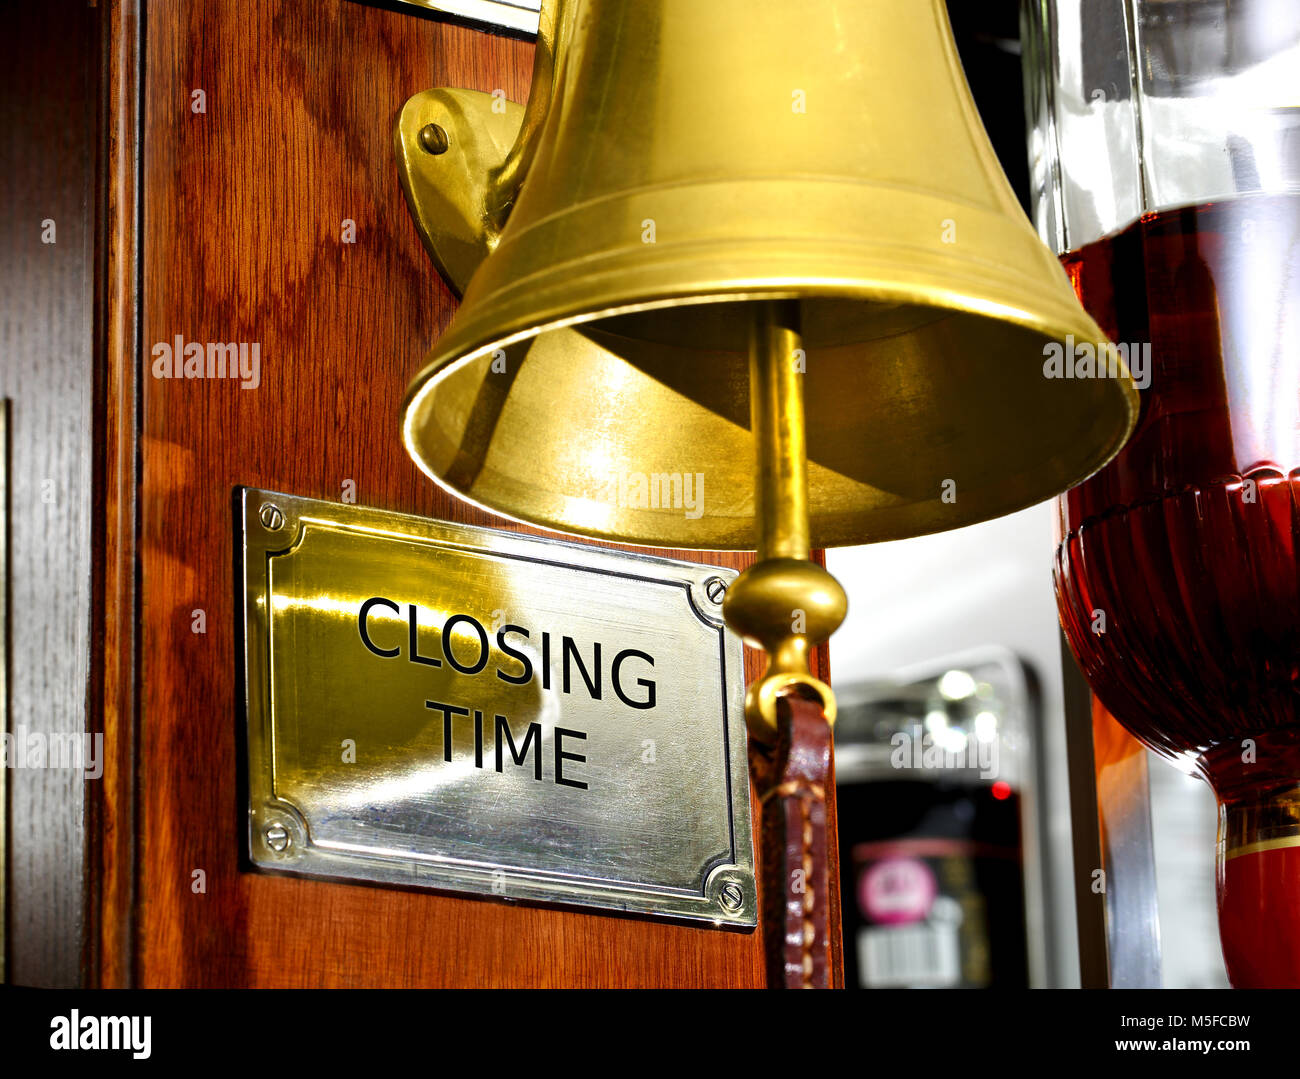 'Closing Time' bell in a British bar - Stock Image